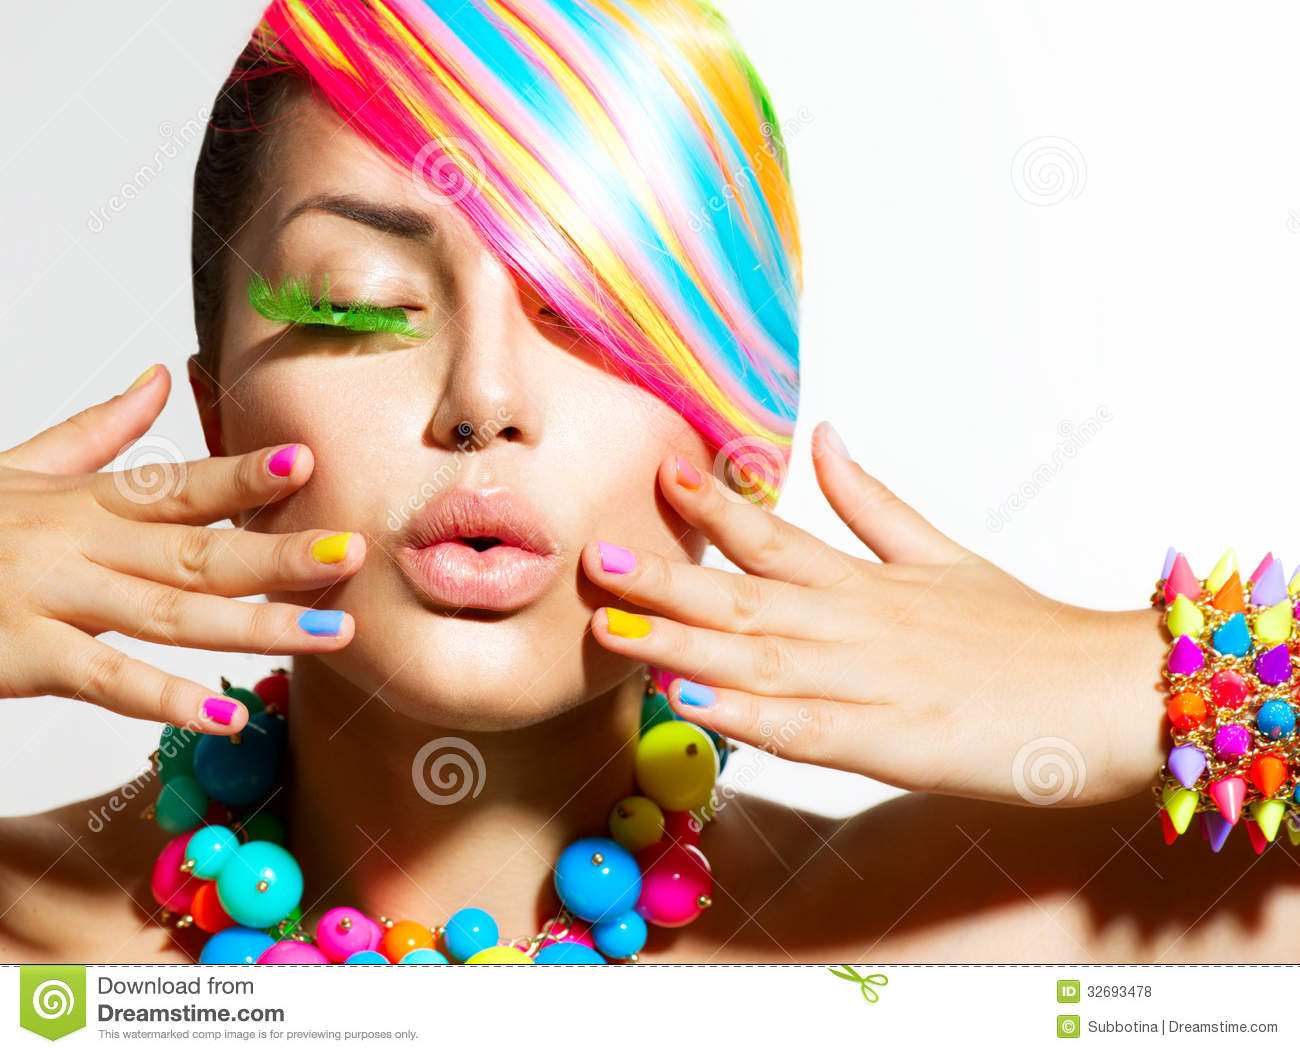 Colorful Makeup, Hair And Accessories Stock Photo - Image ...